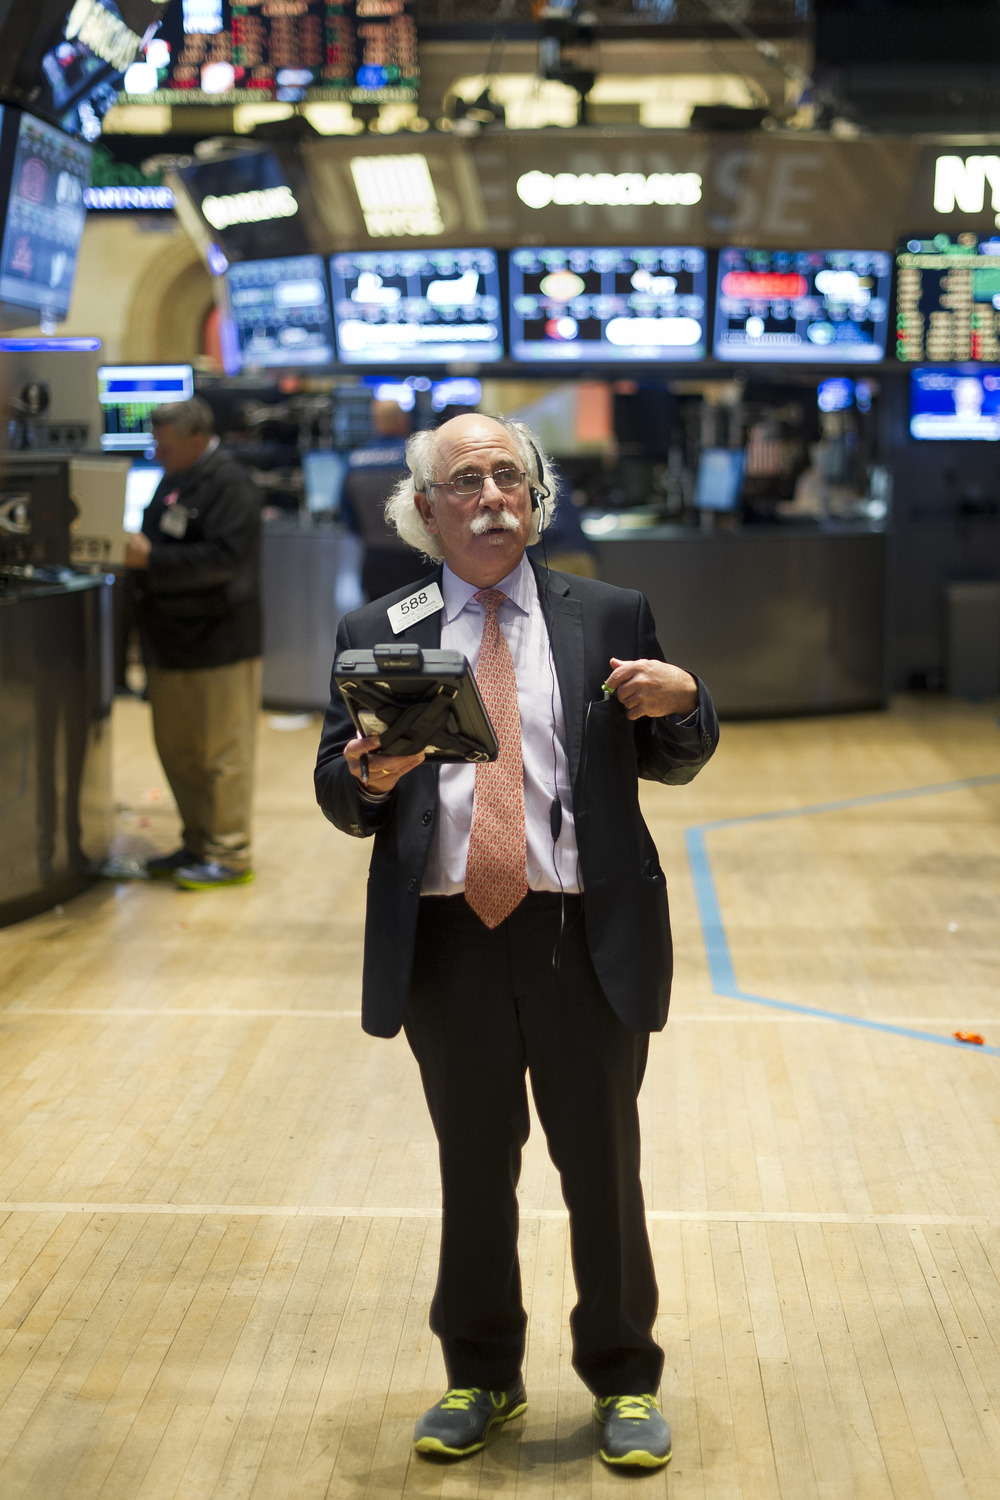 Peter Tuchman of Quattro M. Securities, Inc., pauses to gather his thoughts as the markets close on Friday, October 31st 2014 at the New York Stock Exchange.